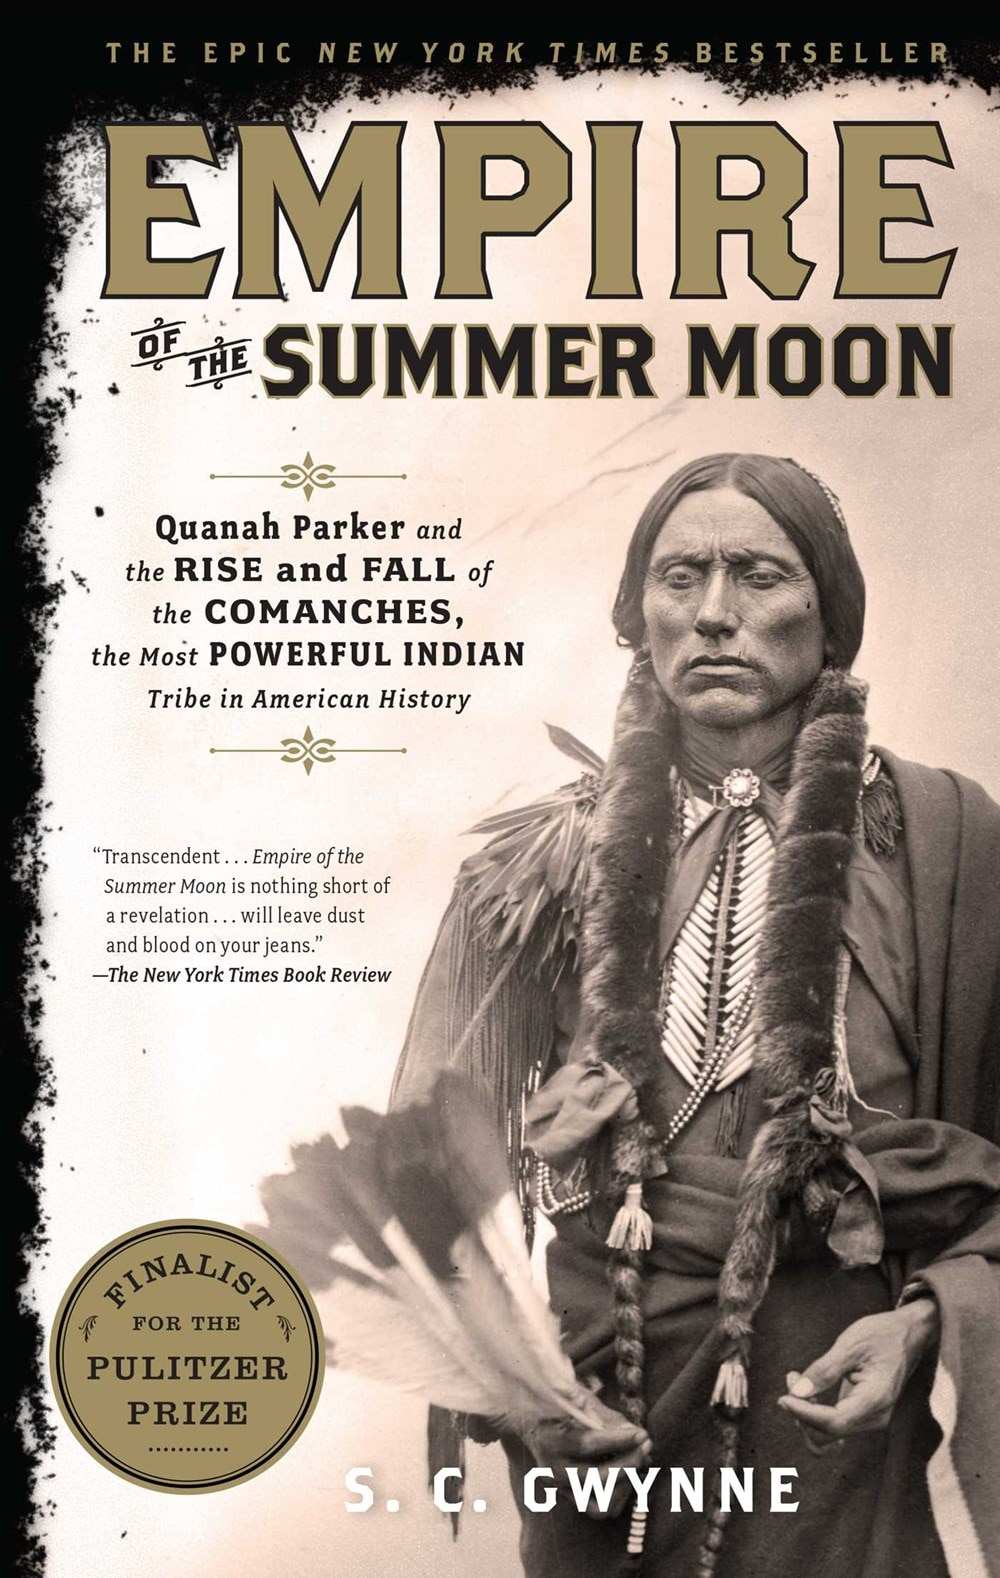 Empire of the Summer Moon: Quanah Parker and the Rise and Fall of the Comanches  the Most Powerful Indian Tribe in American History